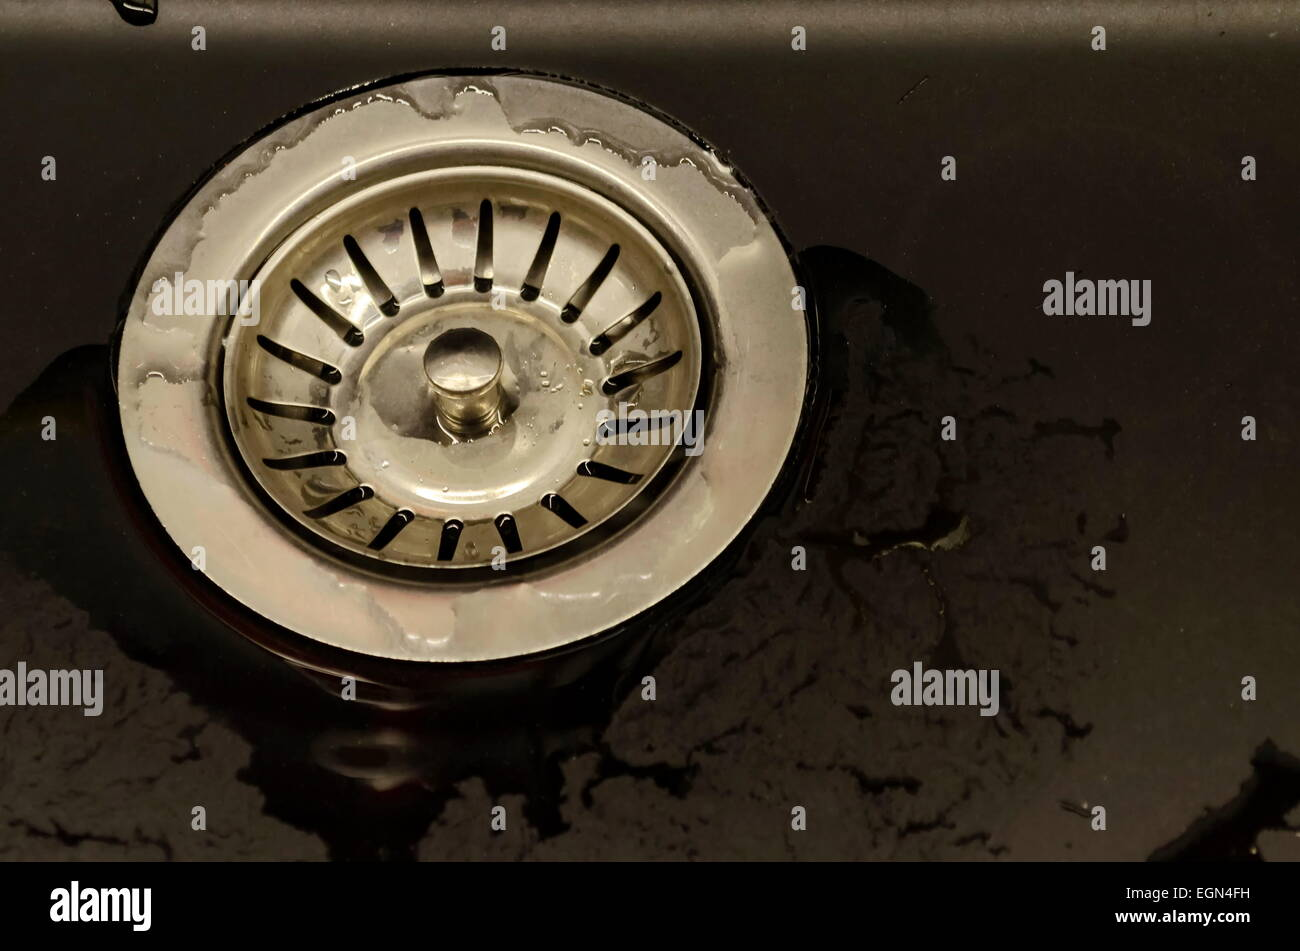 Metal sifter at kitchen sink - Stock Image